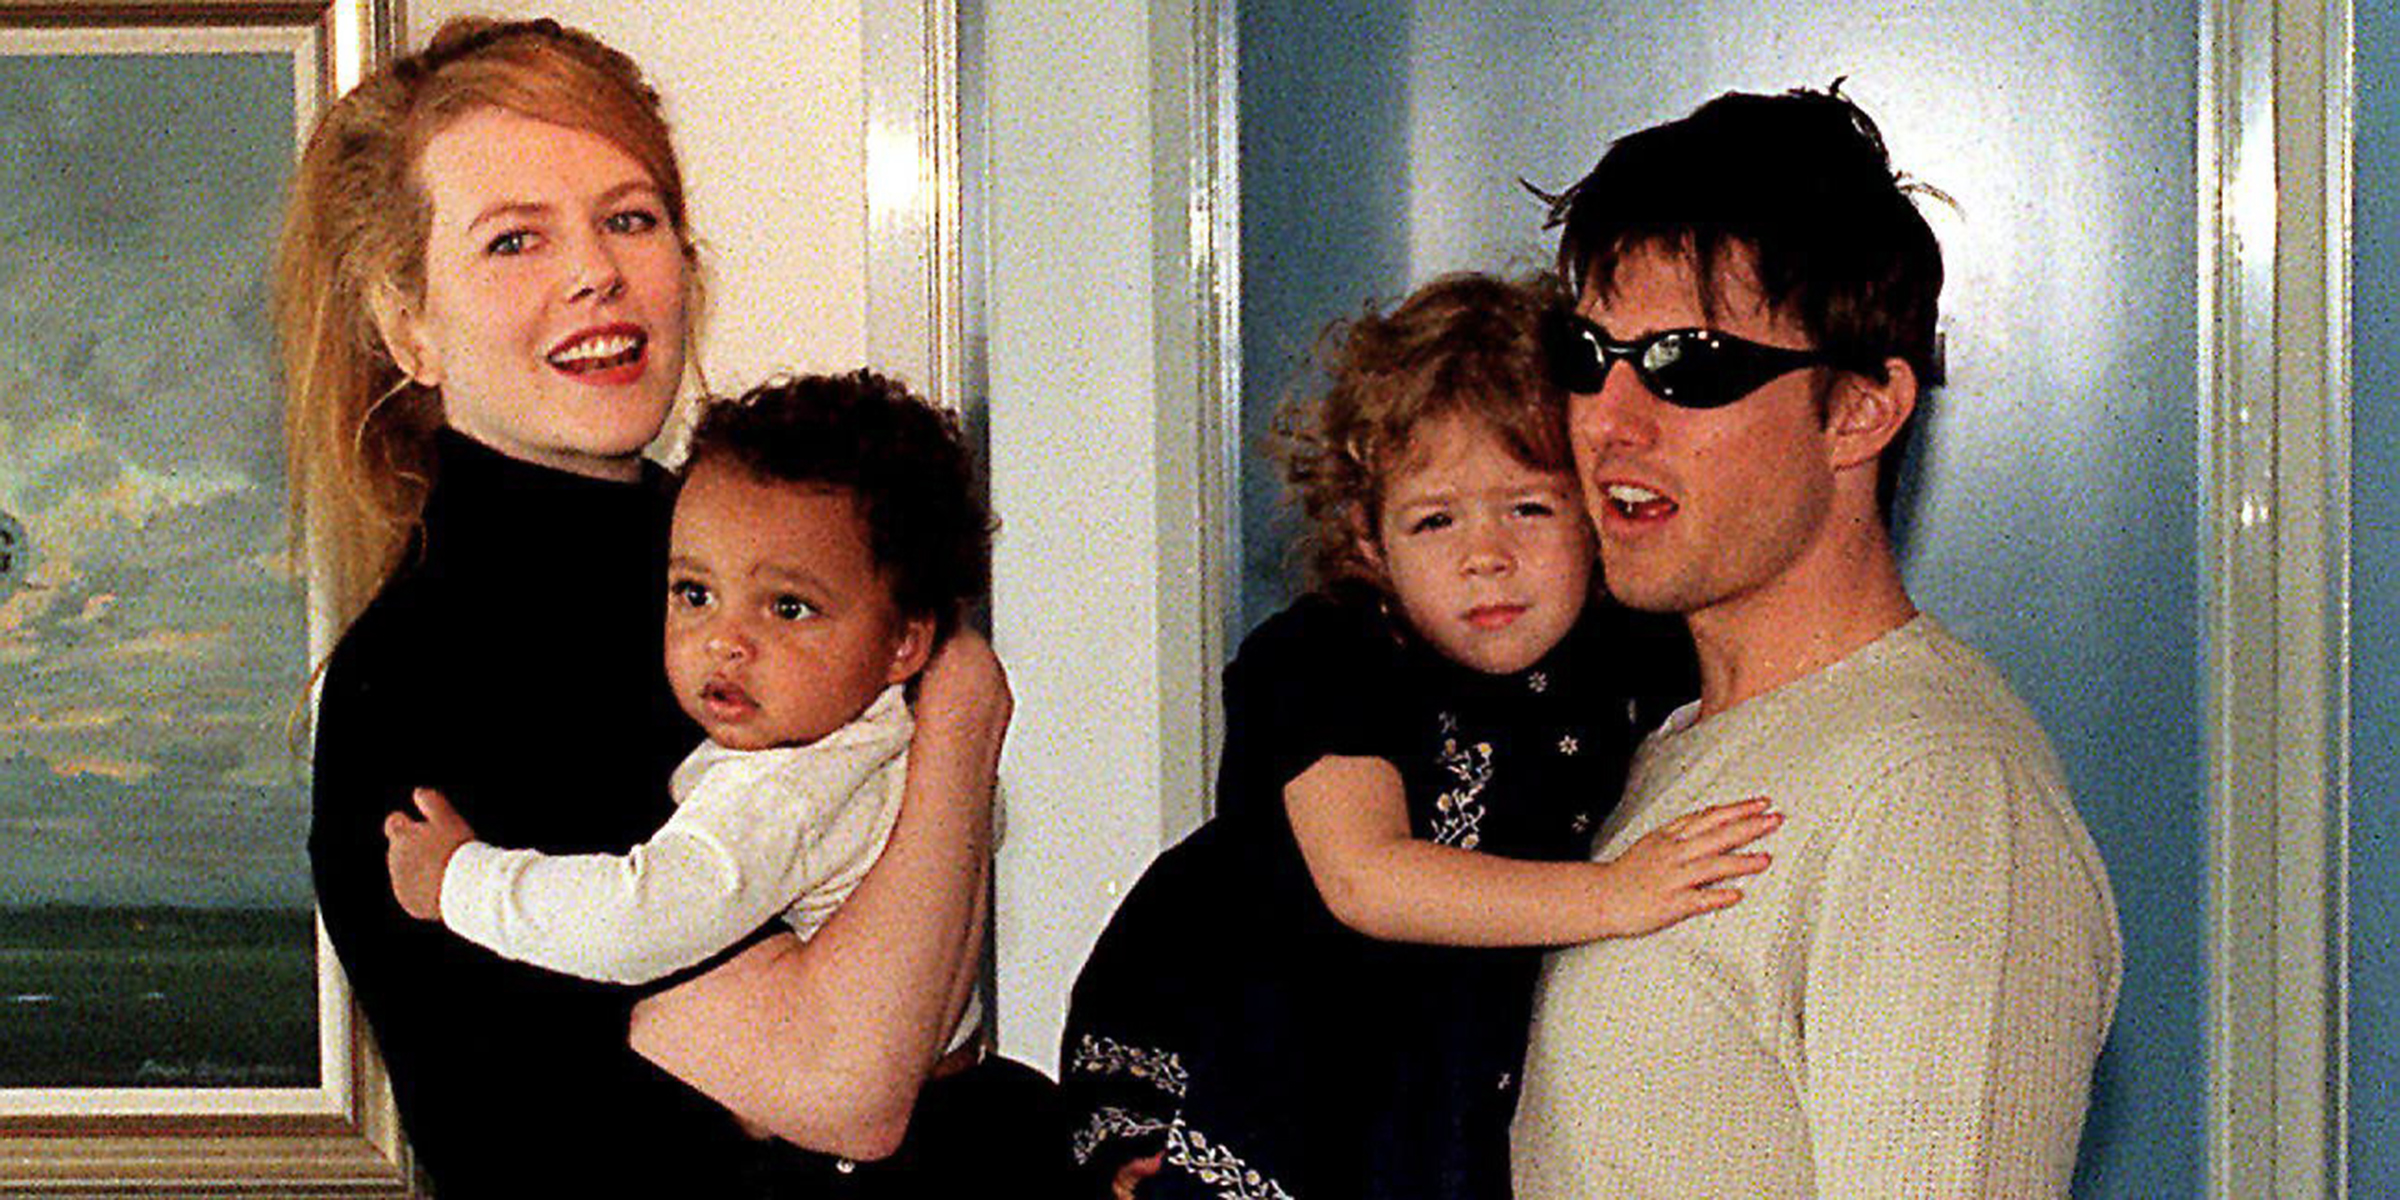 Nicole Kidman opens up about her kids with Tom Cruise: 'It's my job to love  them'